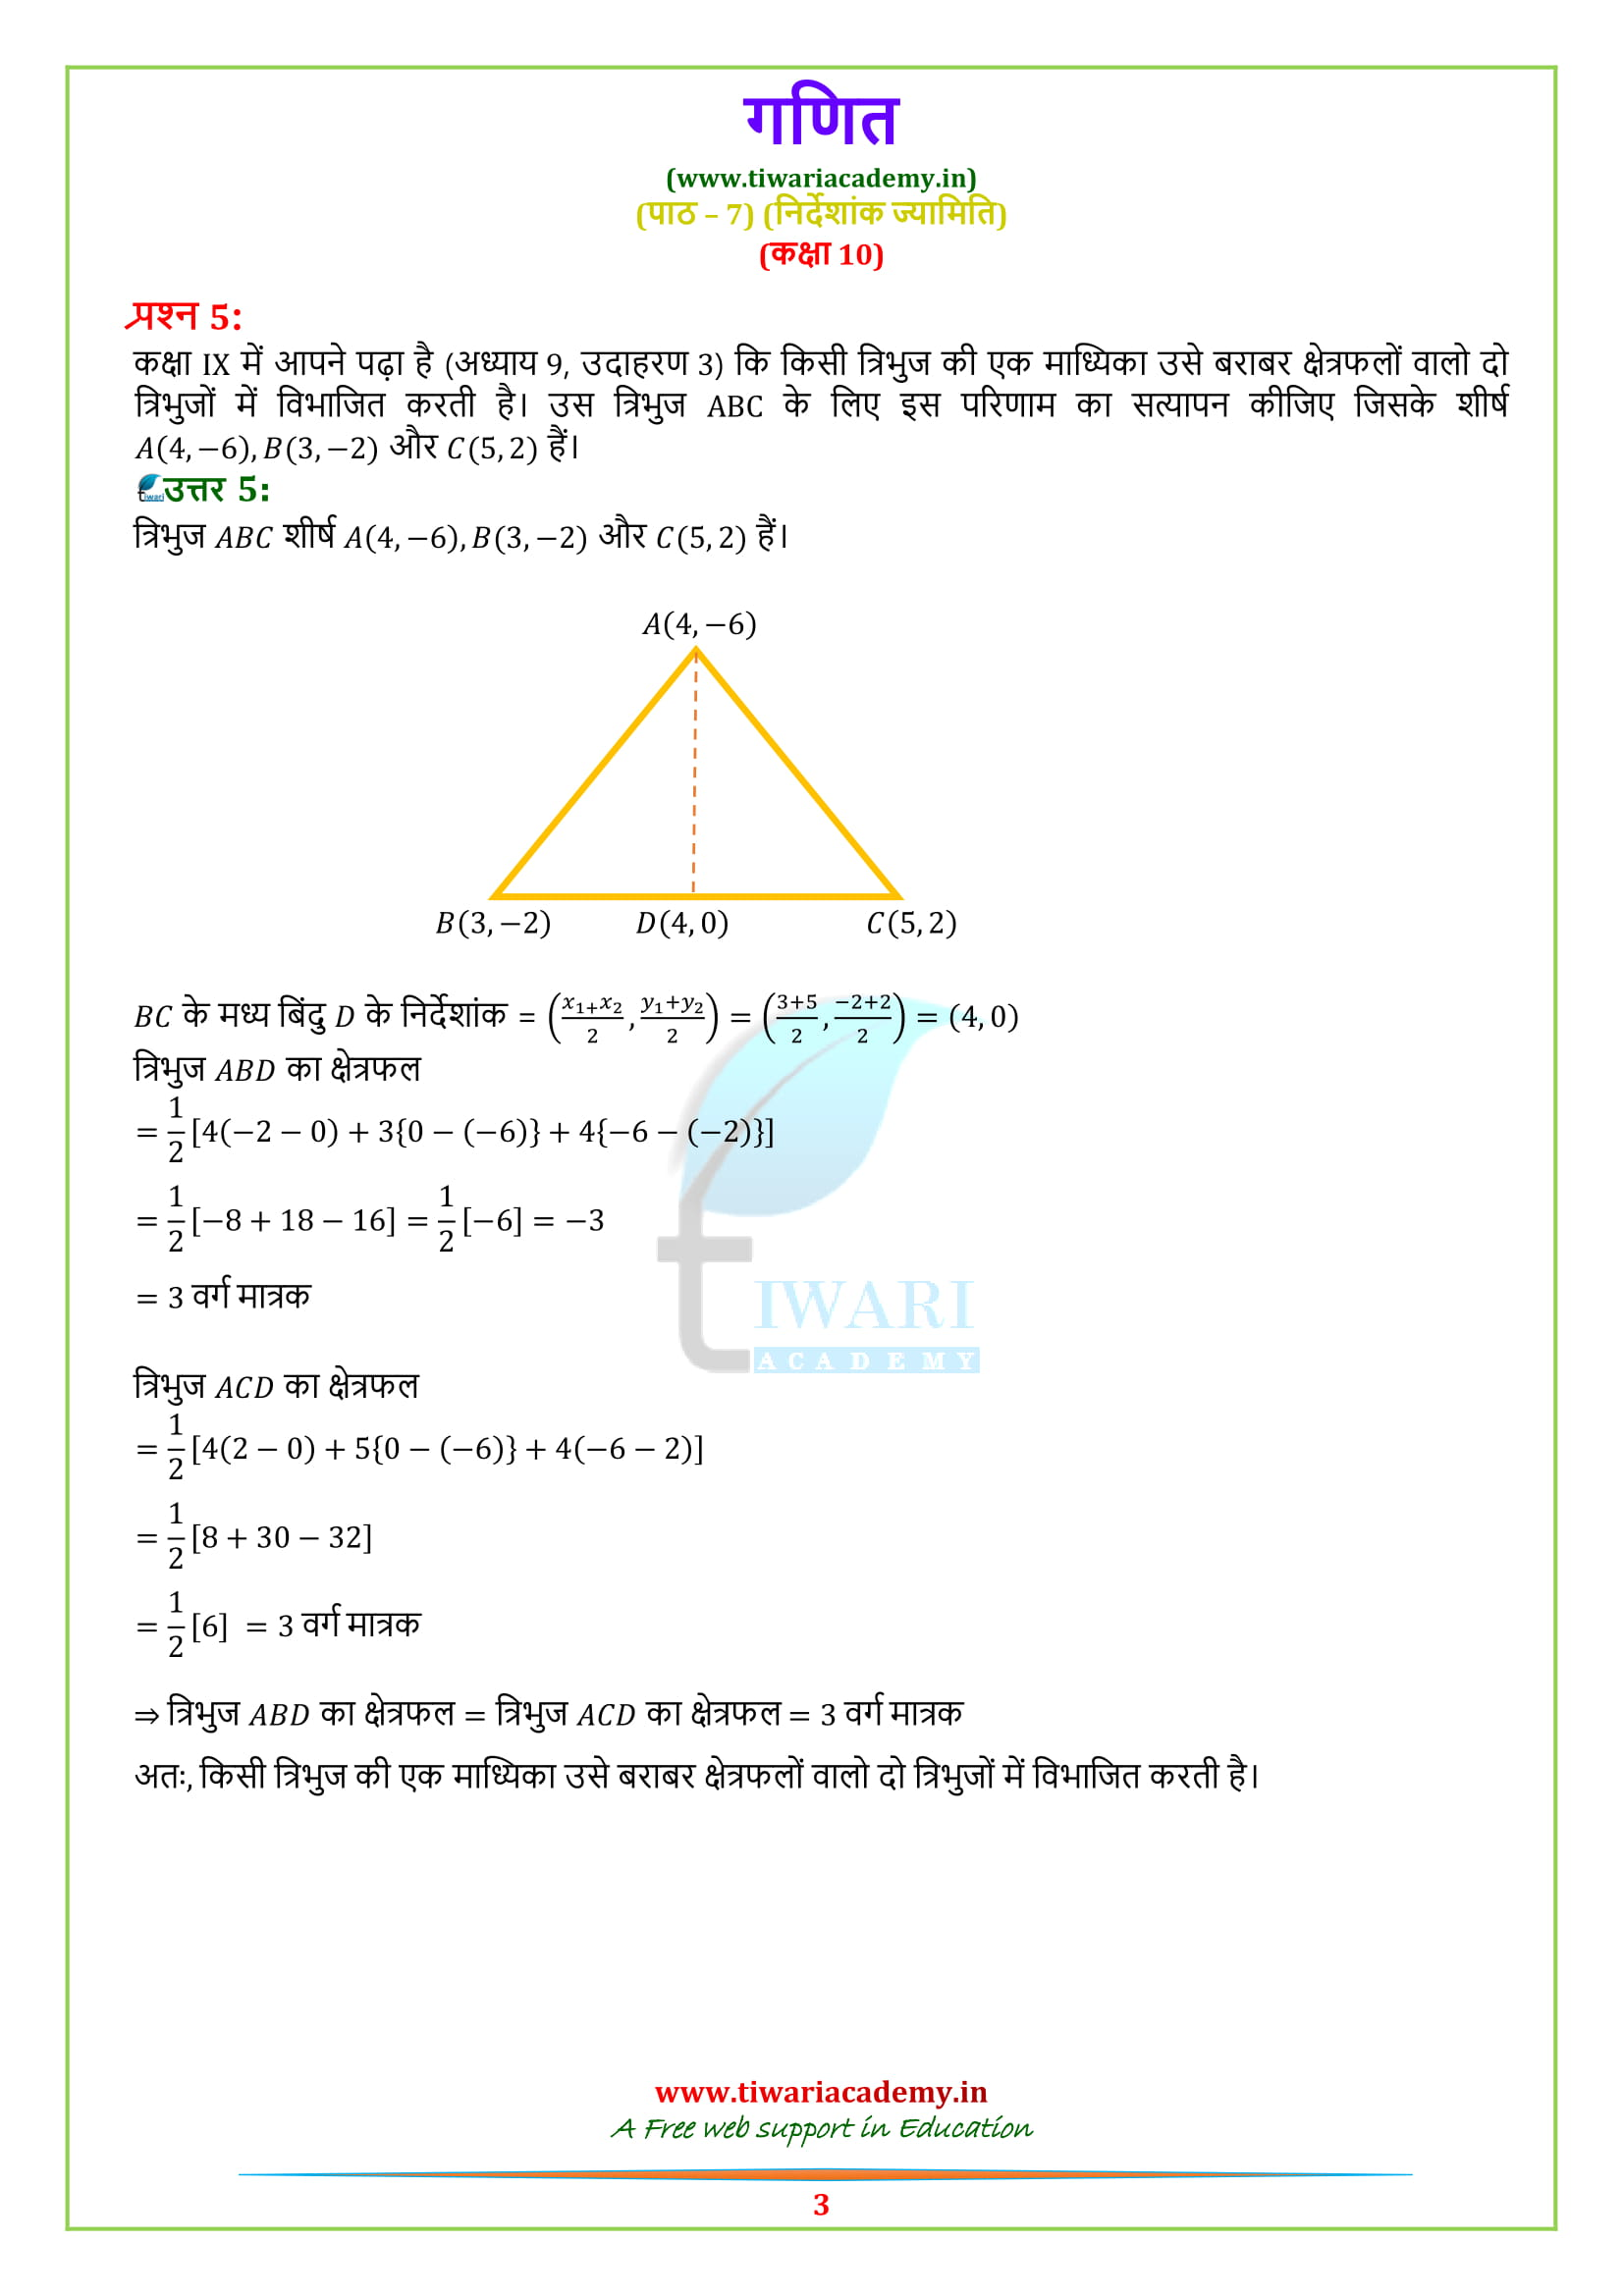 Class 10 Maths Exercise 7.3 solutions updated all questions answers for 2018-19 high school